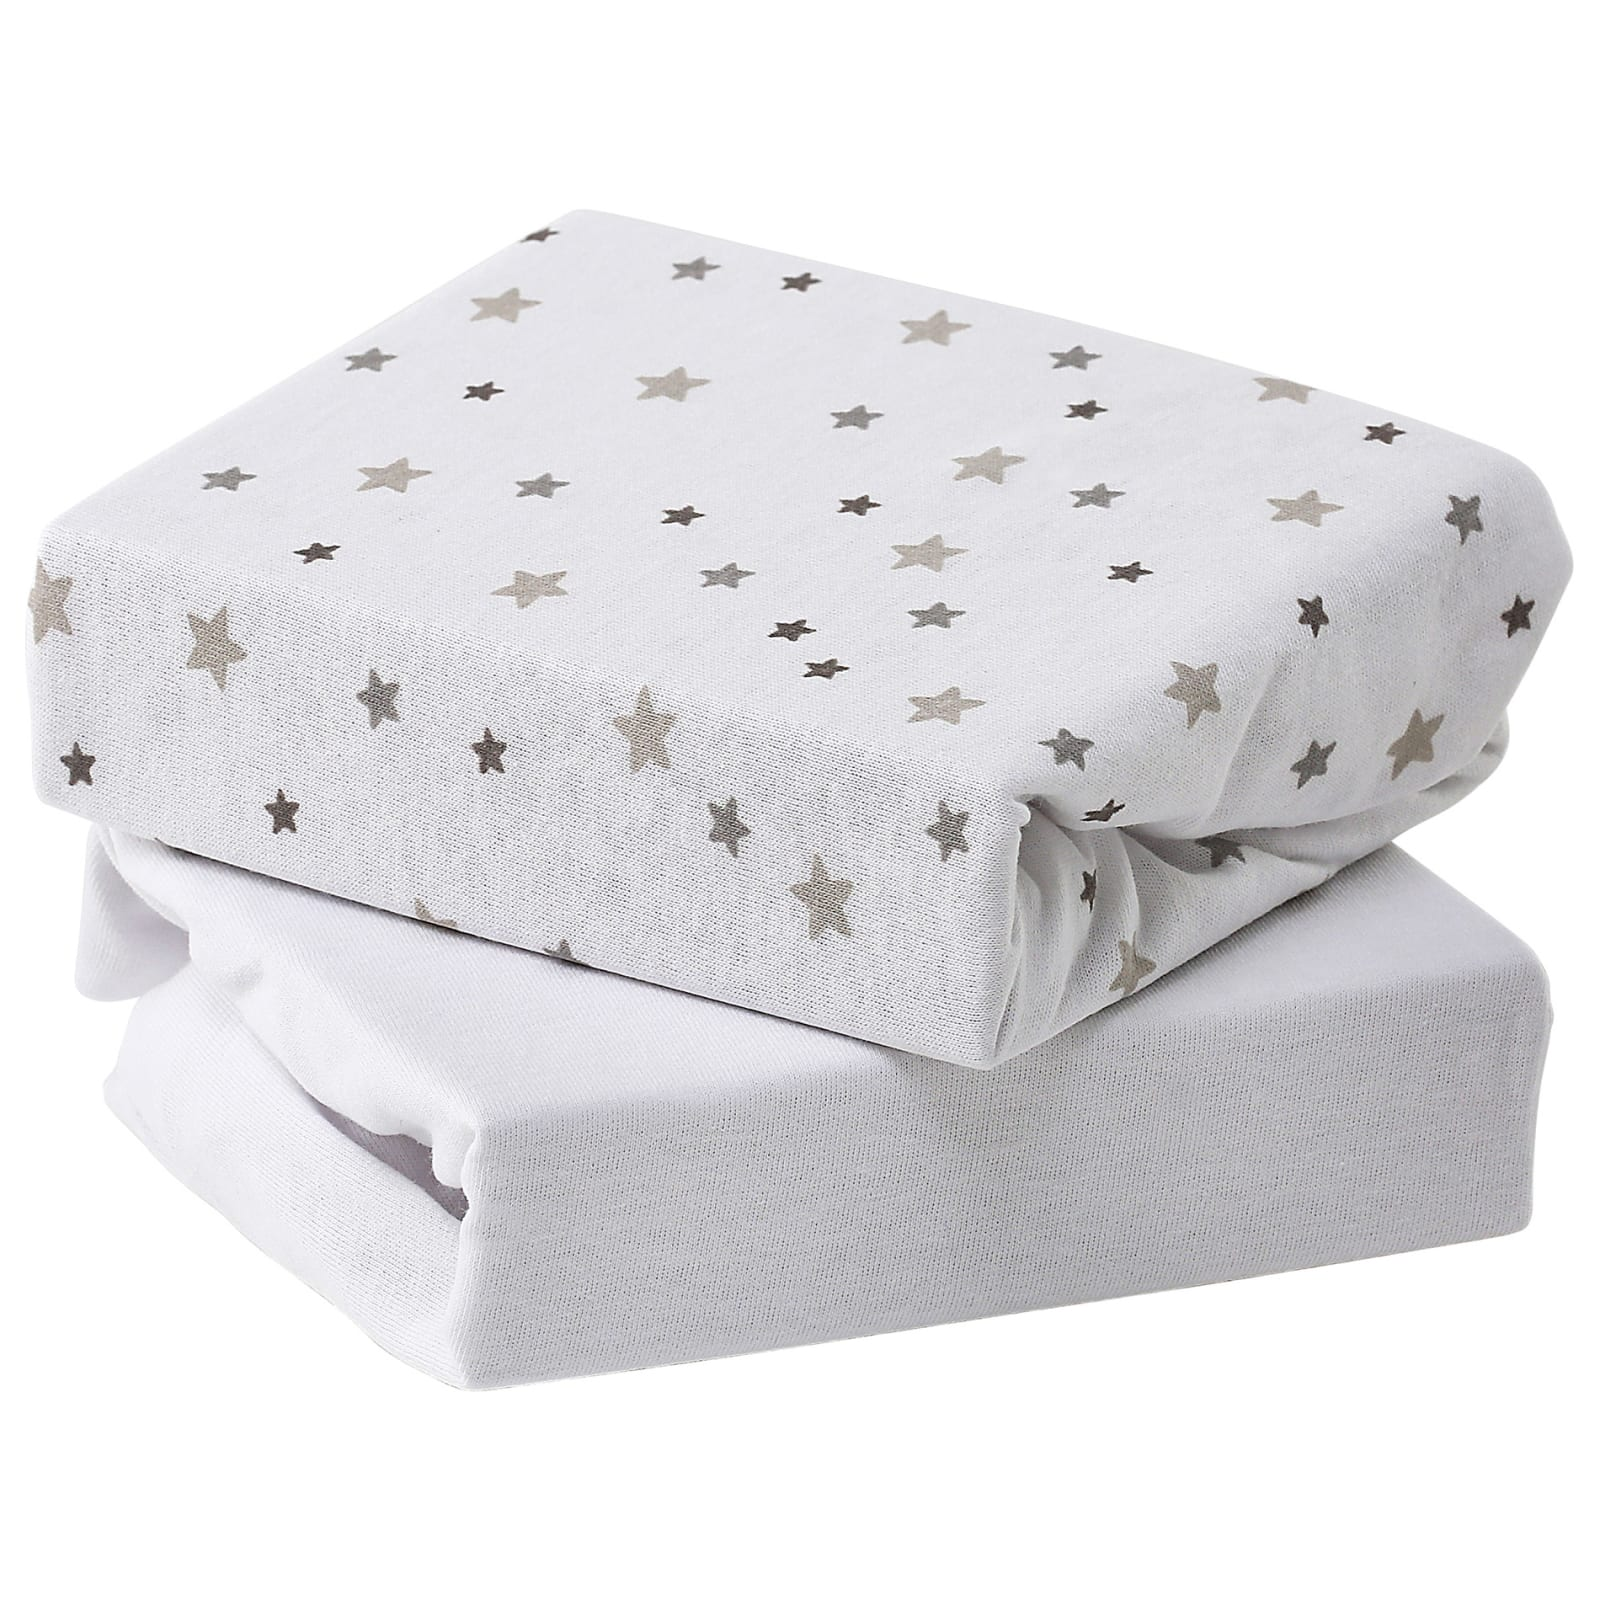 2 Pack Sheets – Crib product image